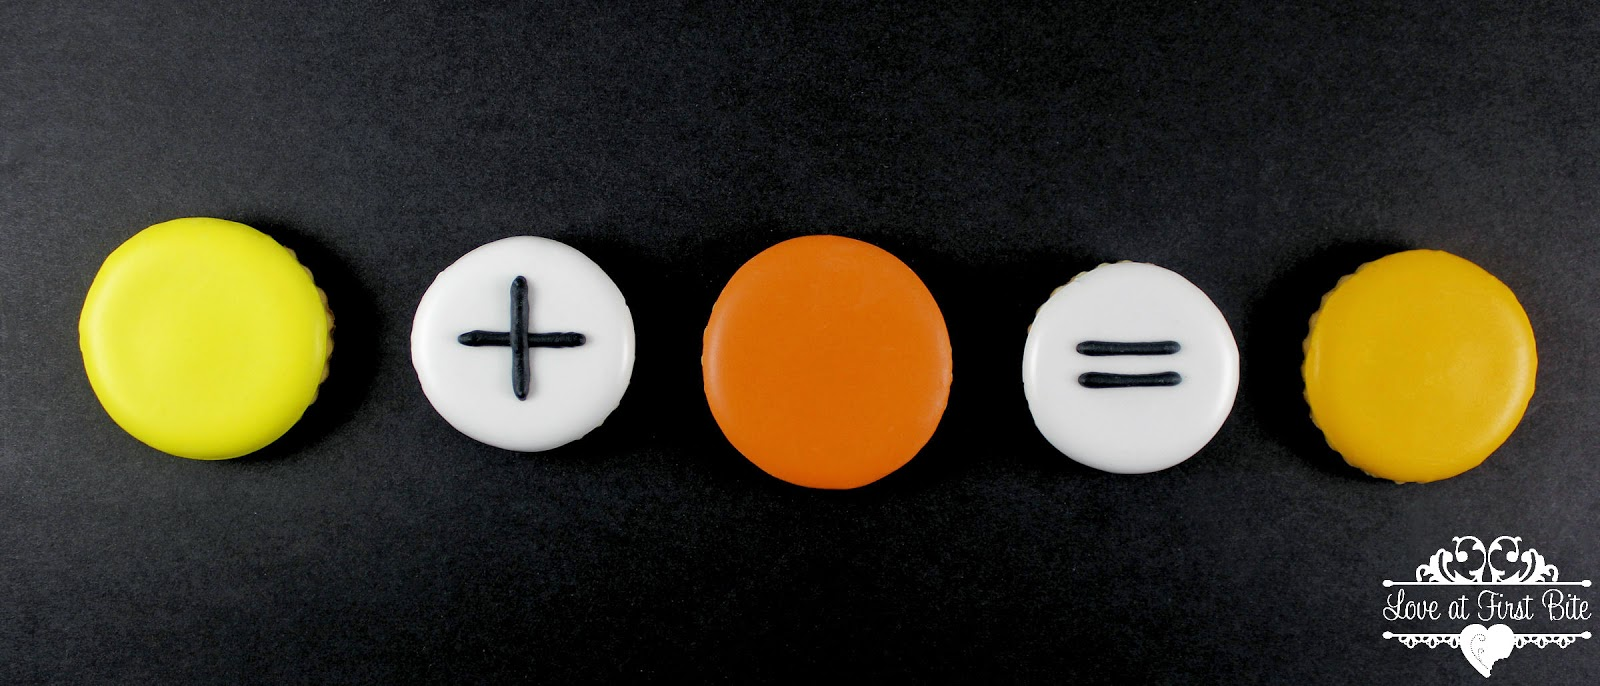 Cookies and color color theory back to basics ii - What makes the color orange ...